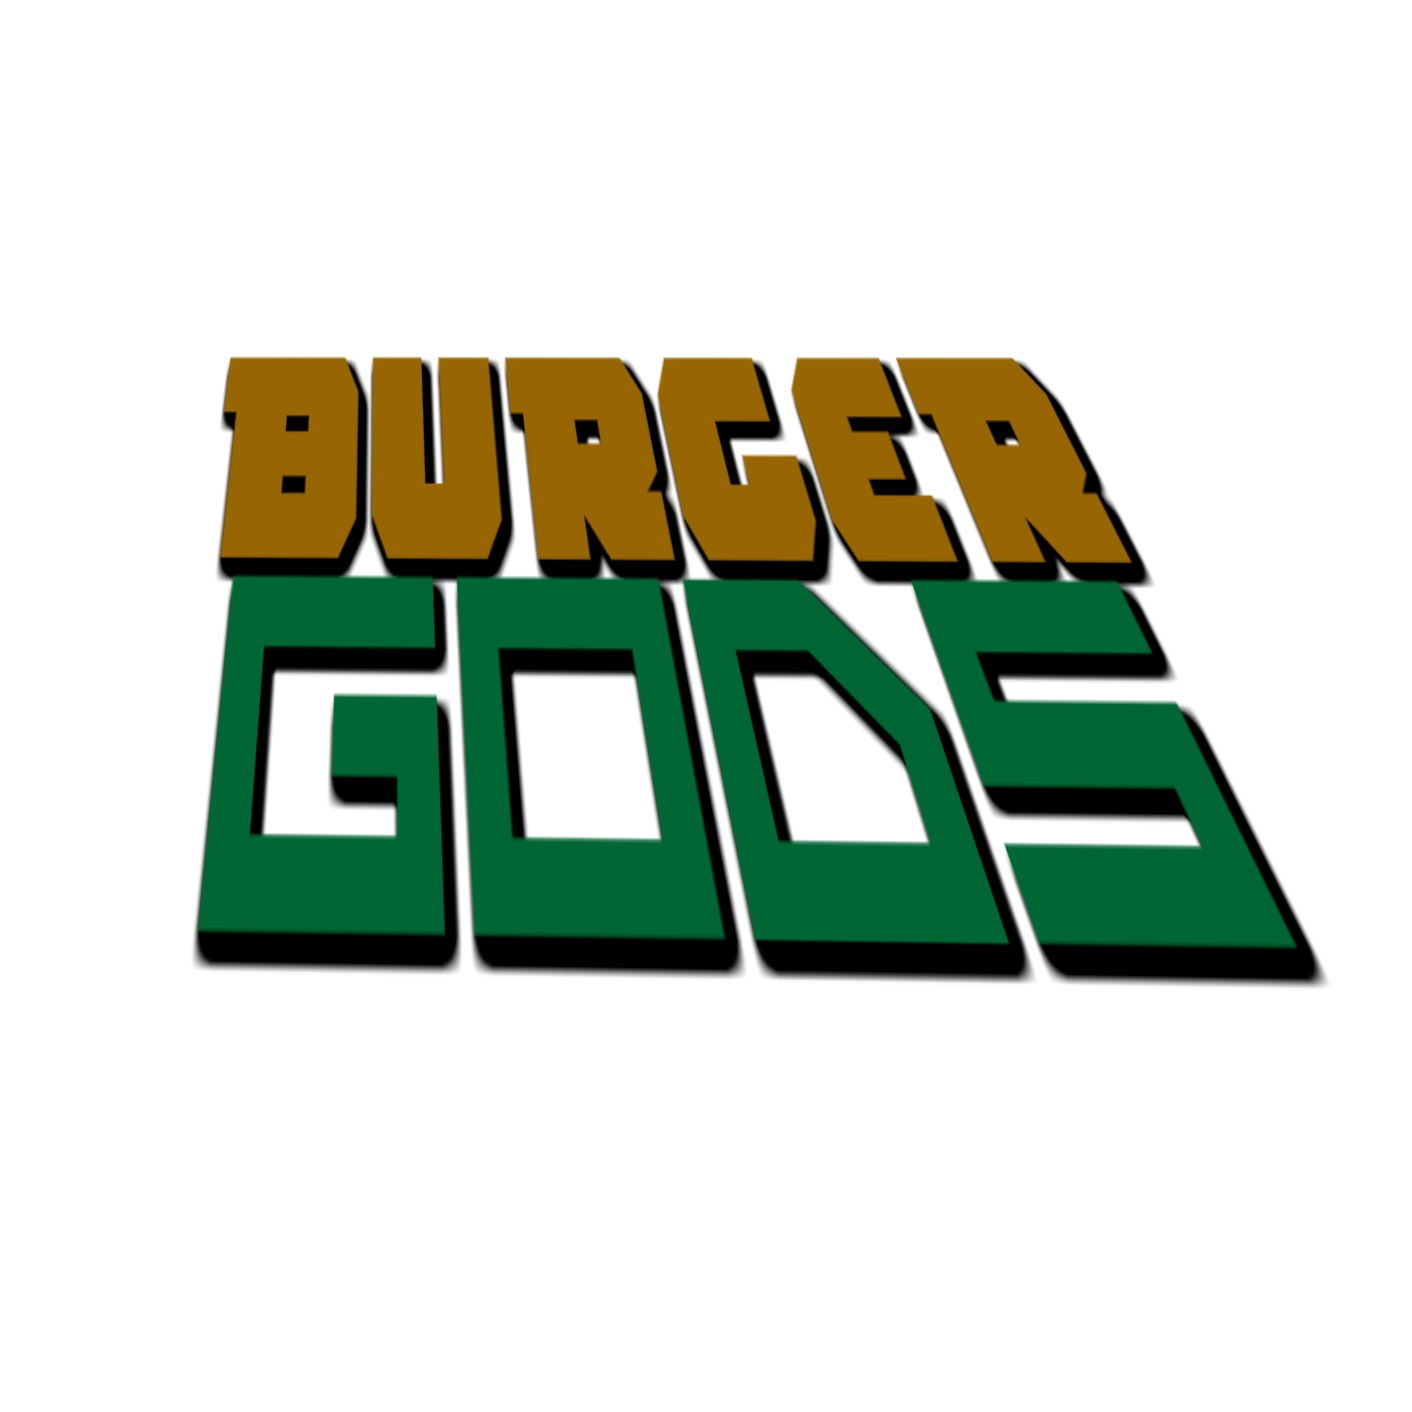 Logo Design by Brian Moelker - Entry No. 11 in the Logo Design Contest Inspiring Logo Design for Burger Gods.